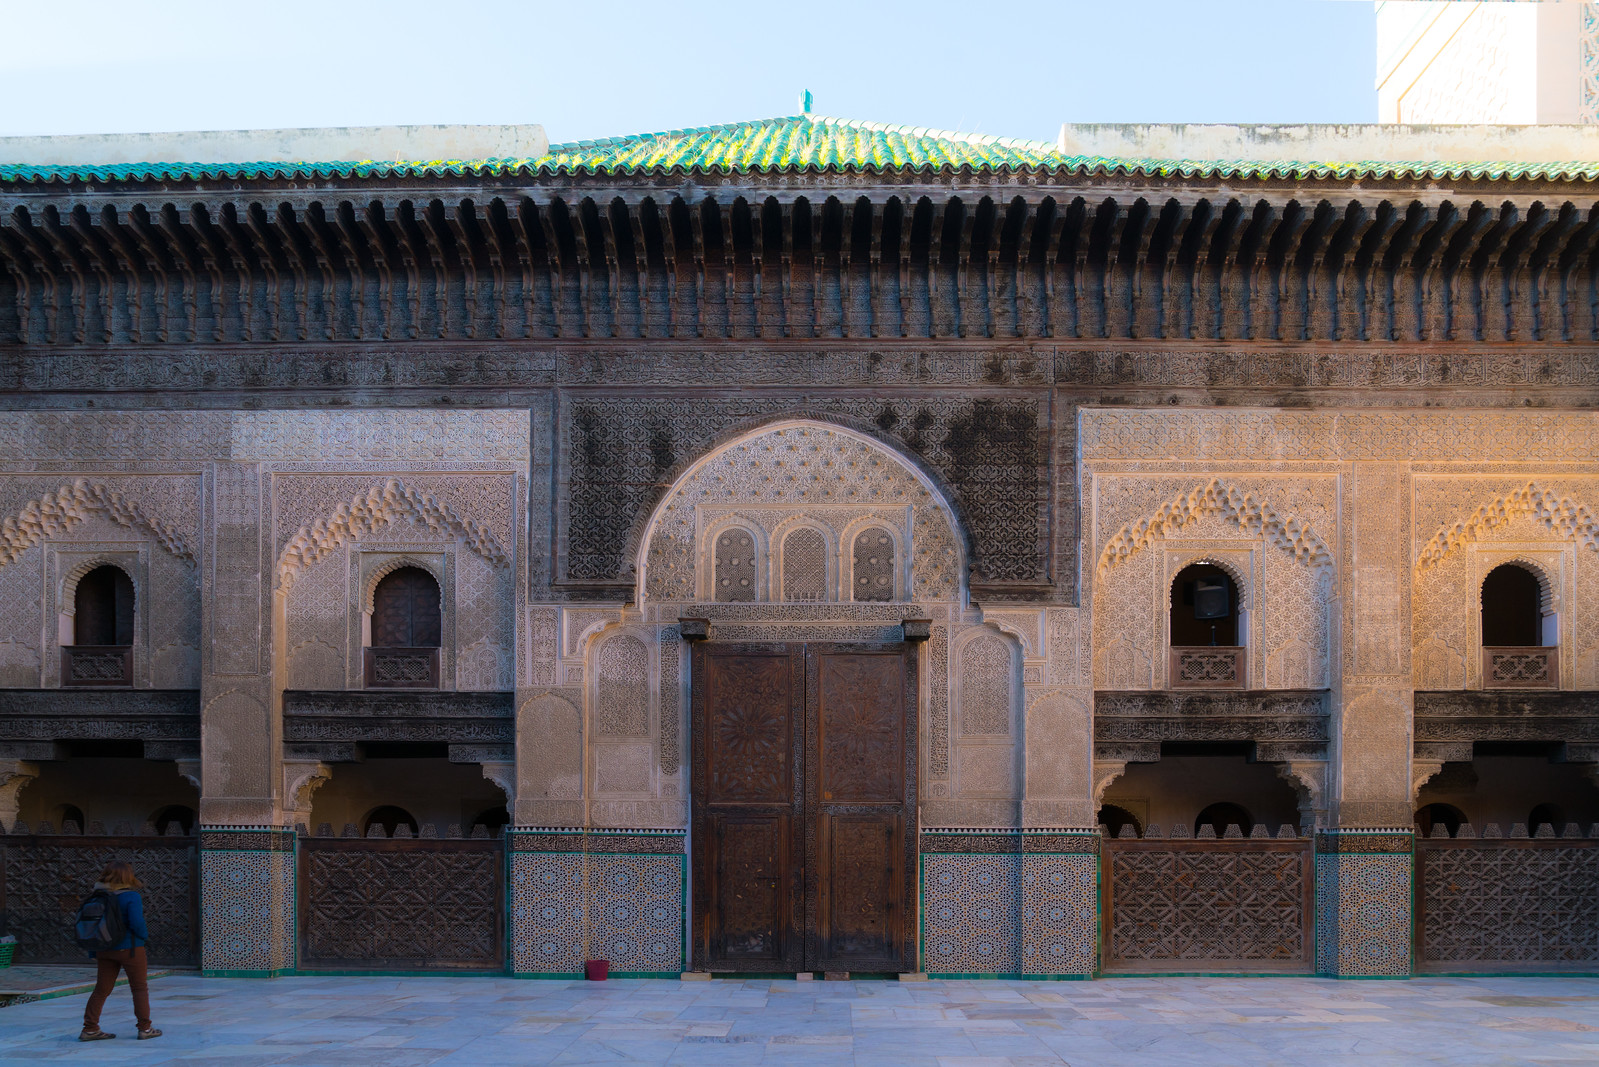 Ben Youssef Madrassa in Fez Morocco - cycling vacation and photography tour with Kevin Wenning